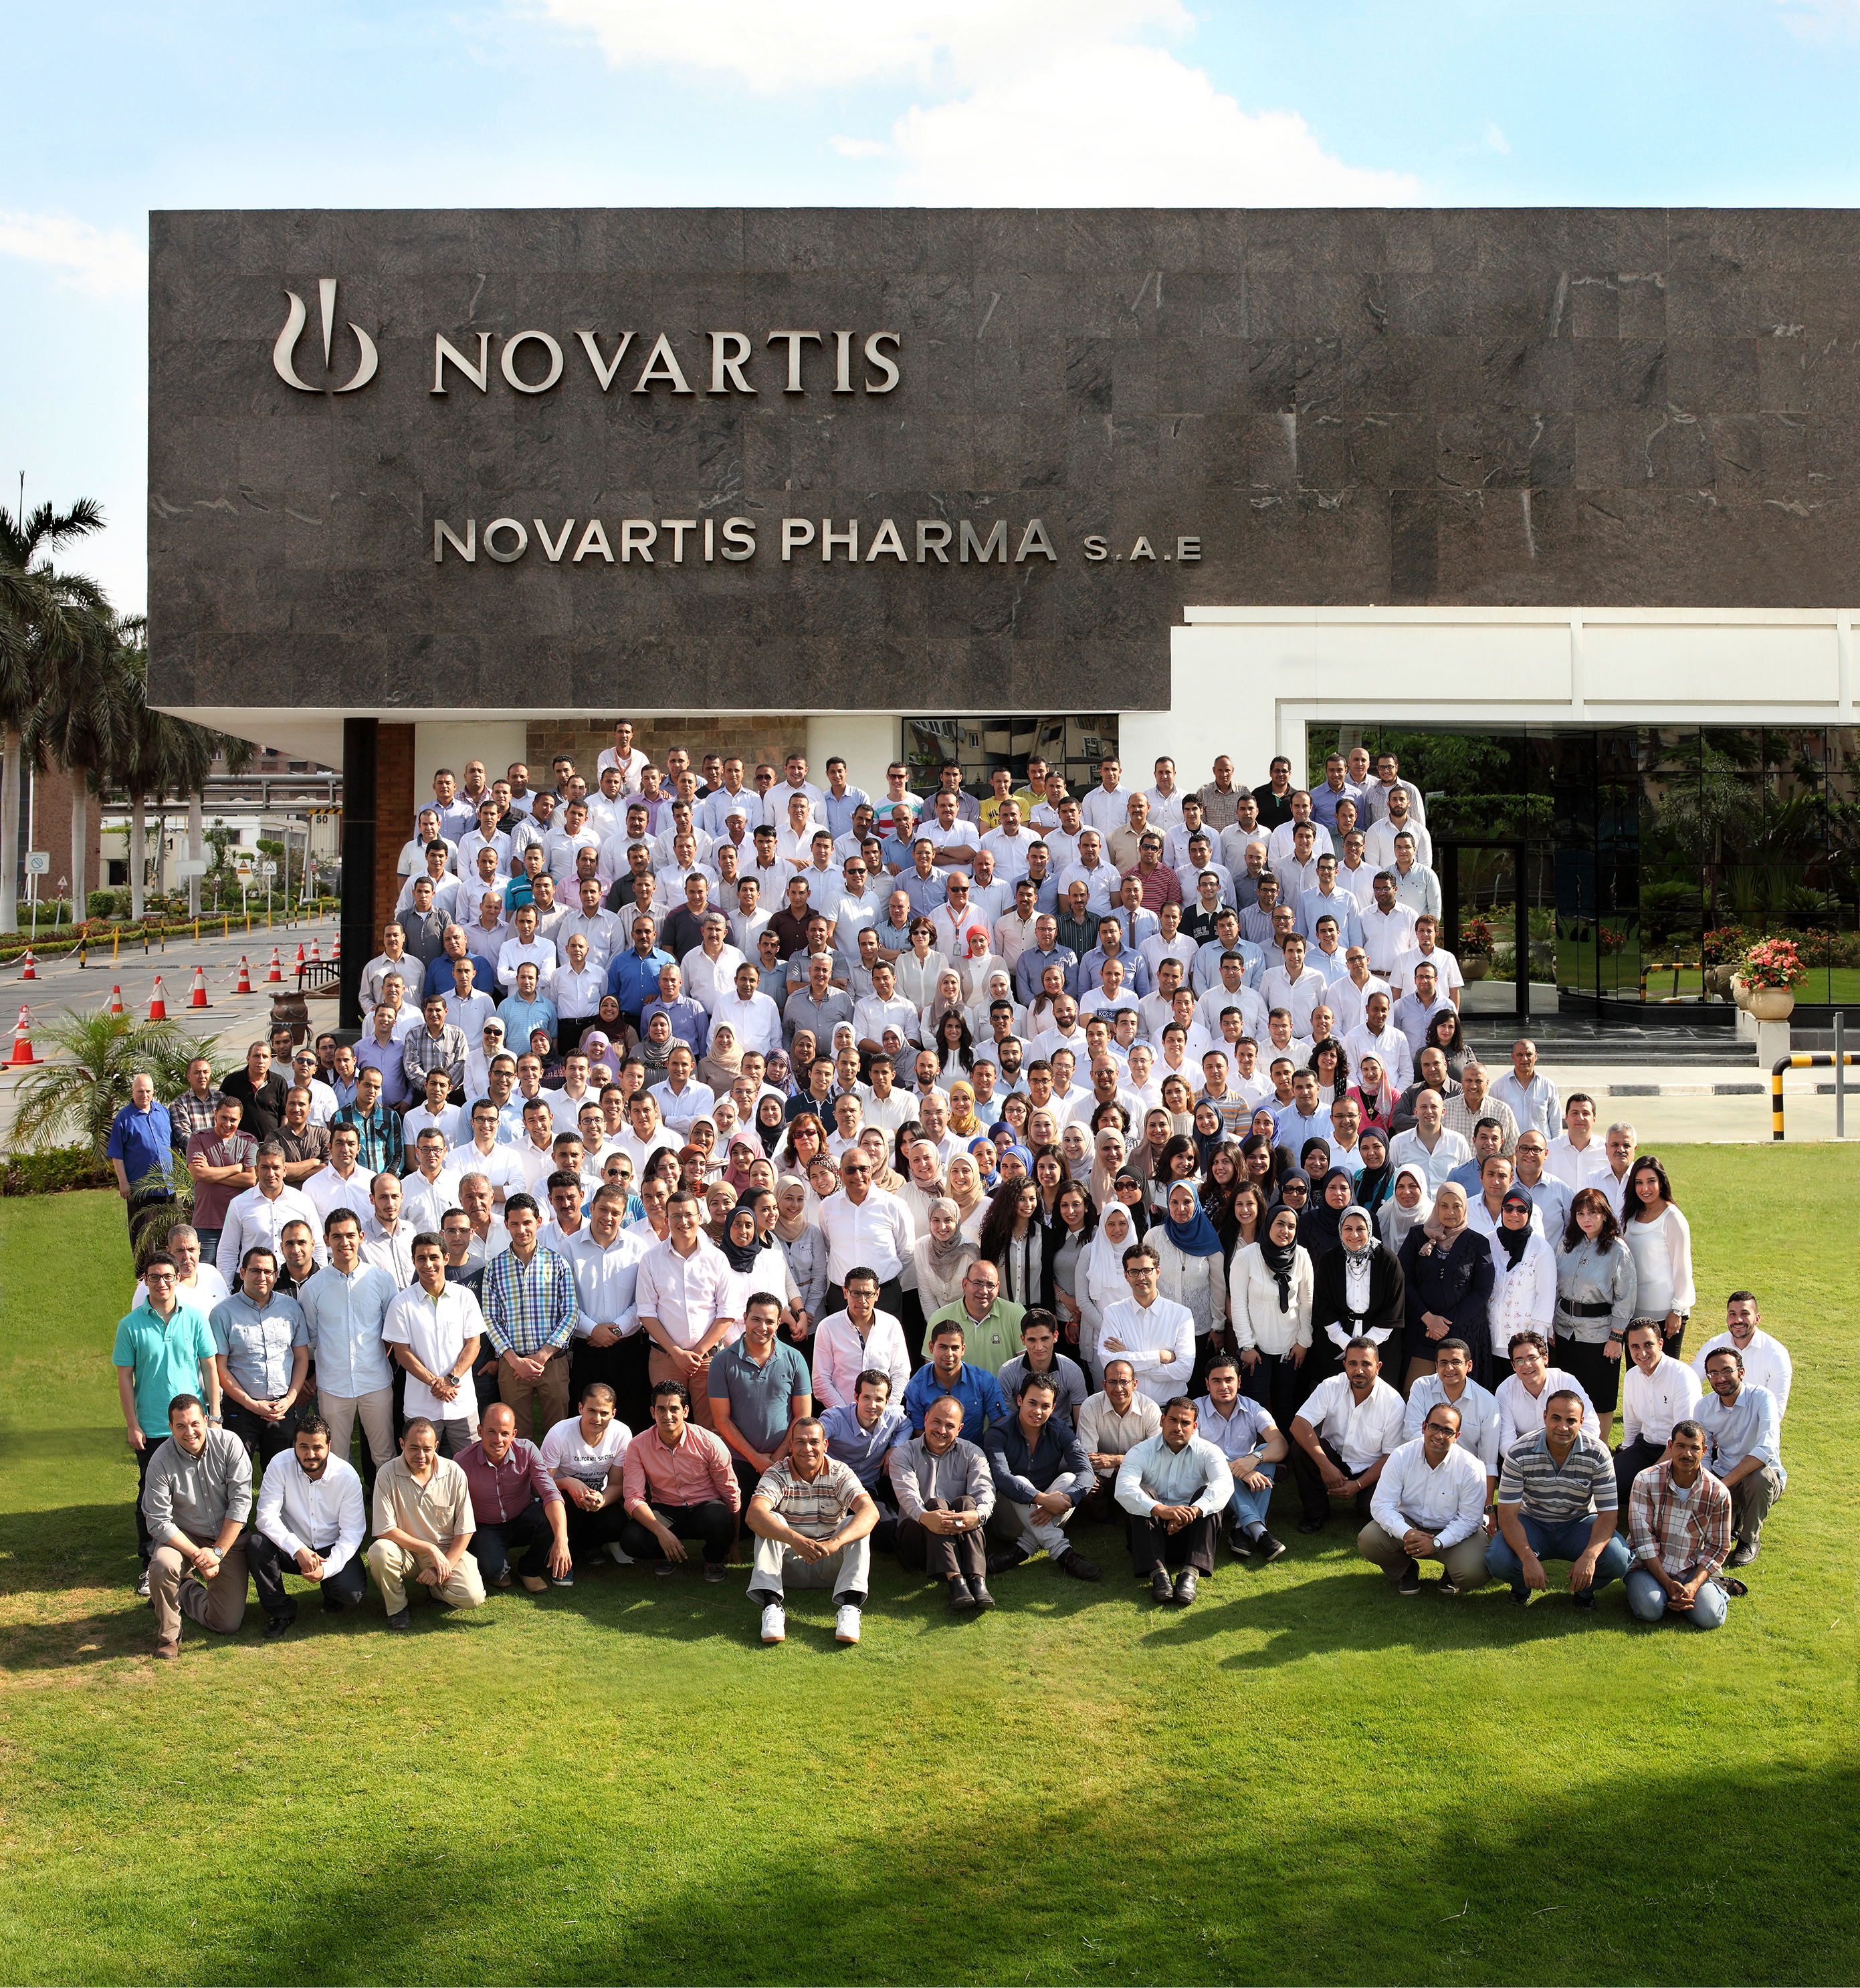 Novartis Group Corporate Shooting